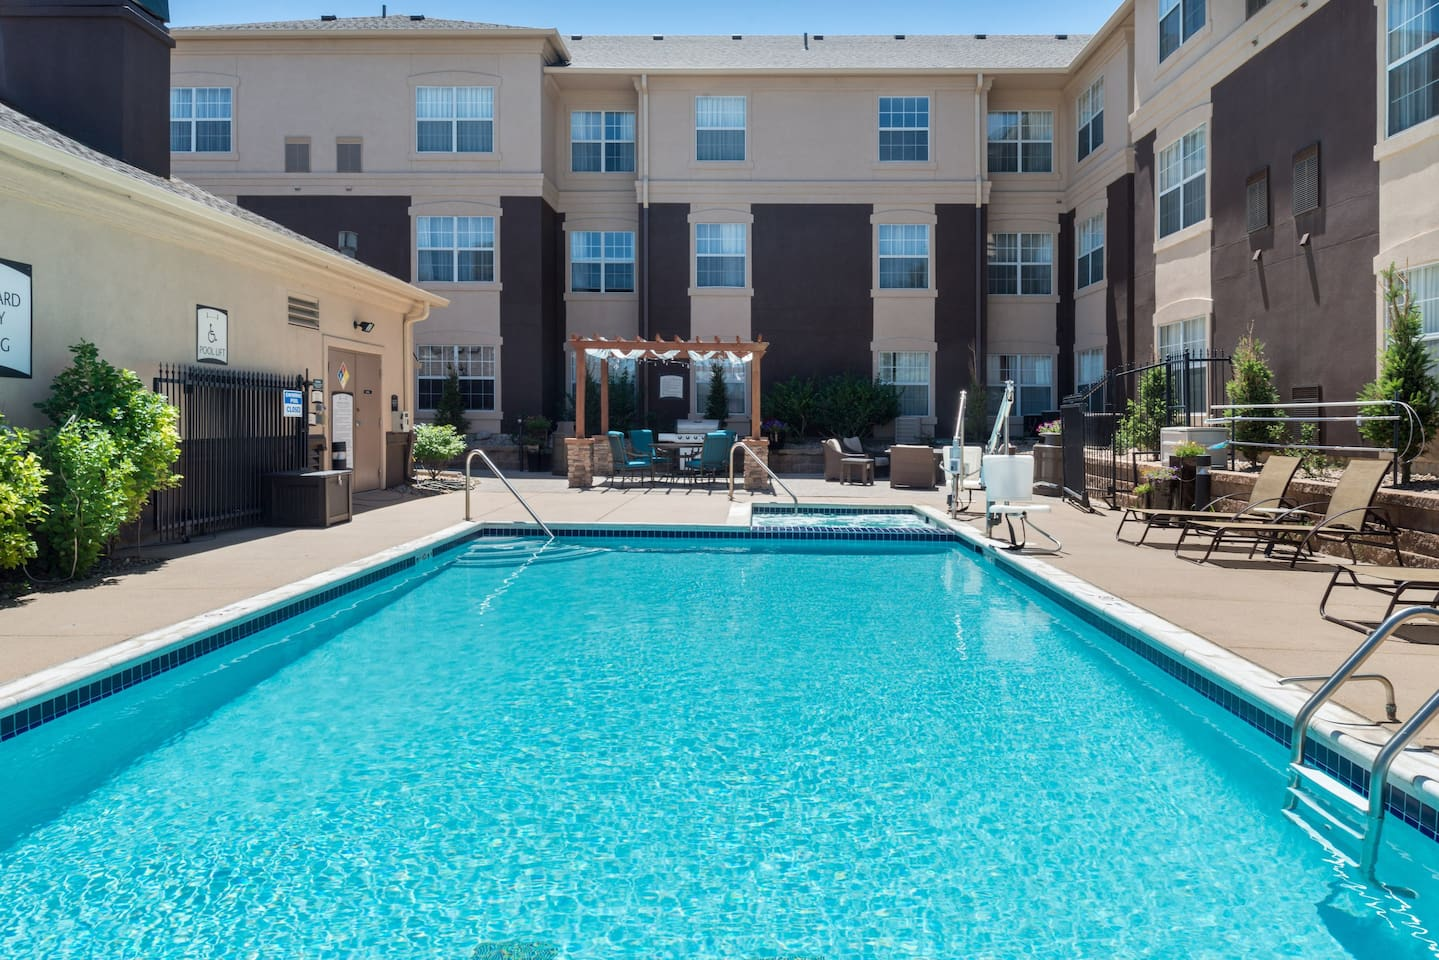 Get some sun in the outdoor pool.